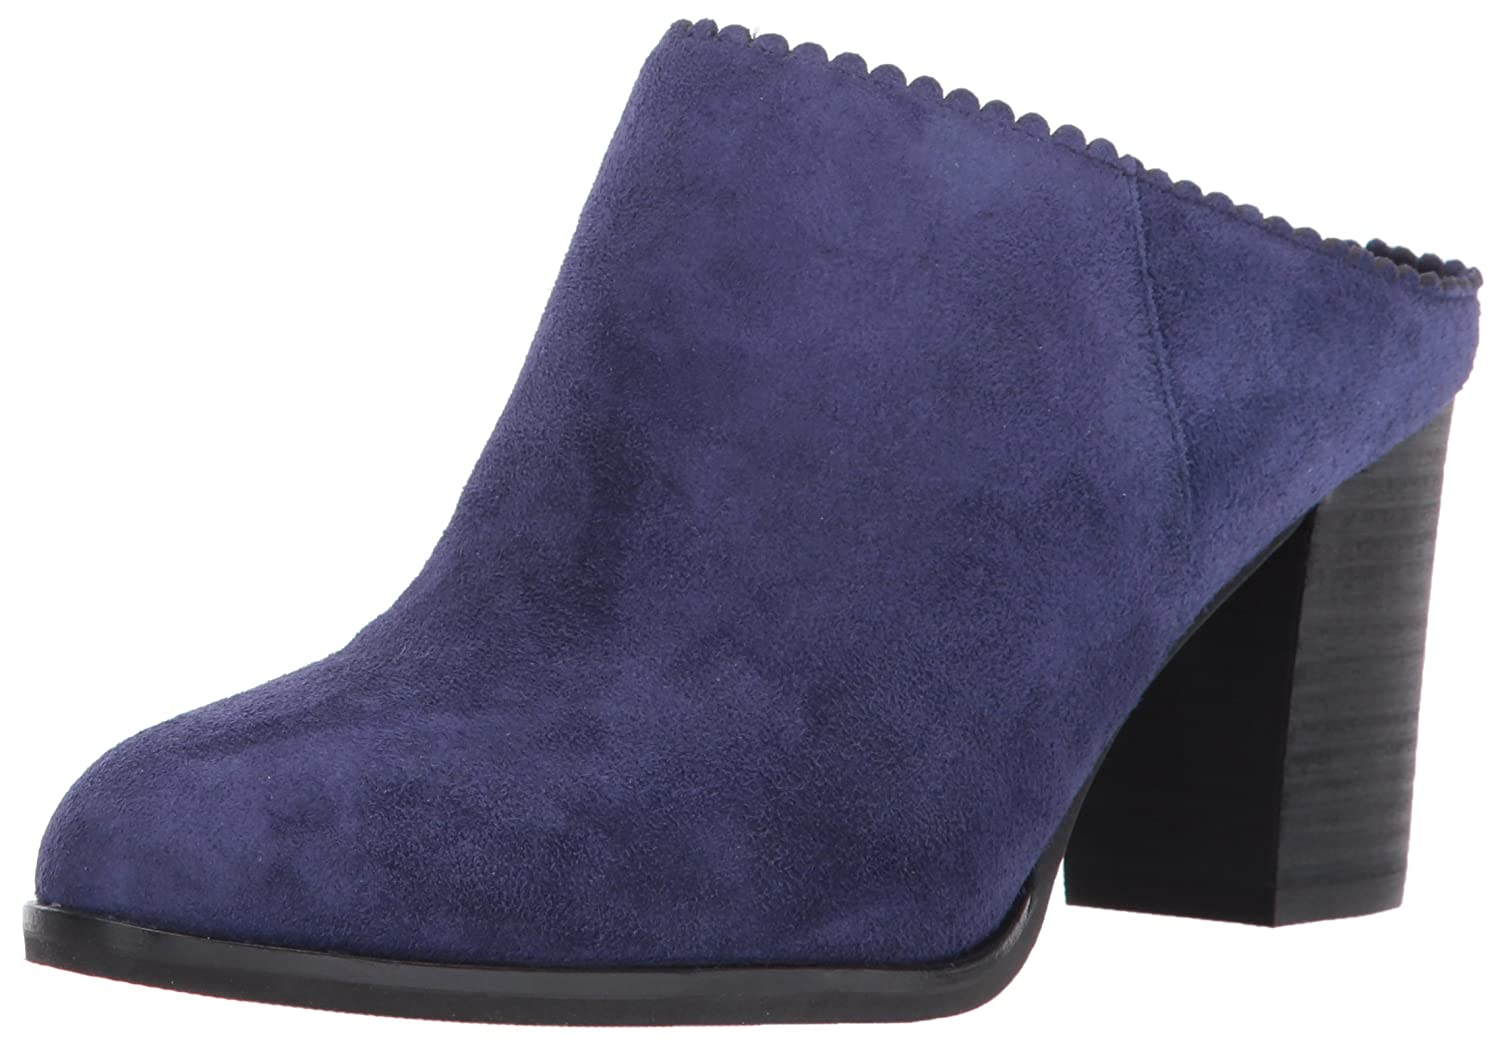 Via Spiga Women's Sophia Backless Bootie Ankle Boot B01NCWS322 6 B(M) US|Marina Blue Suede